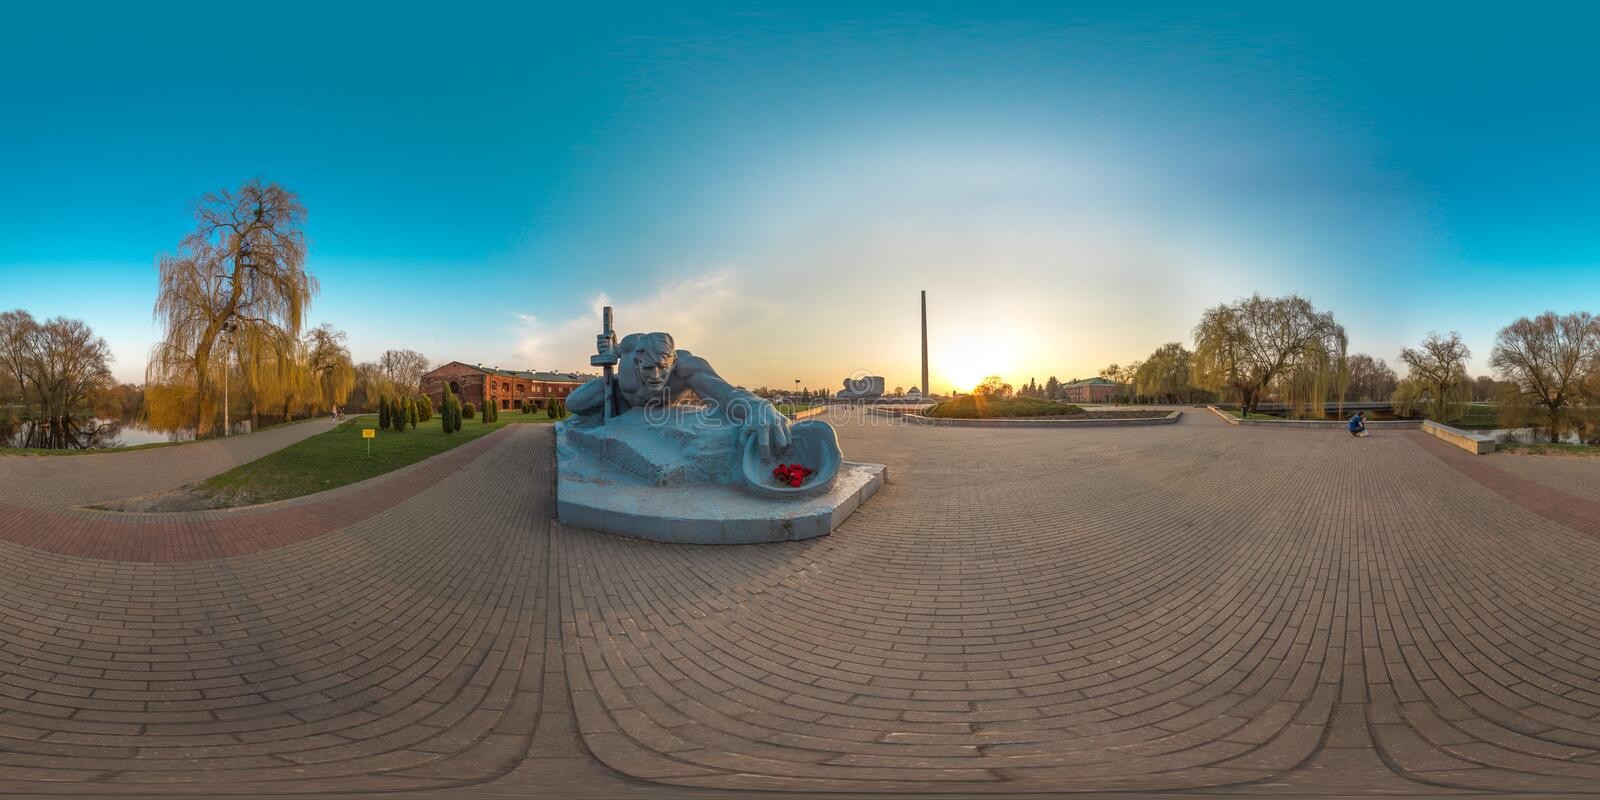 3D spherical panorama with 360 viewing angle. Ready for virtual reality or VR. Full equirectangular projection. Brest fortness. Spring royalty free stock photography